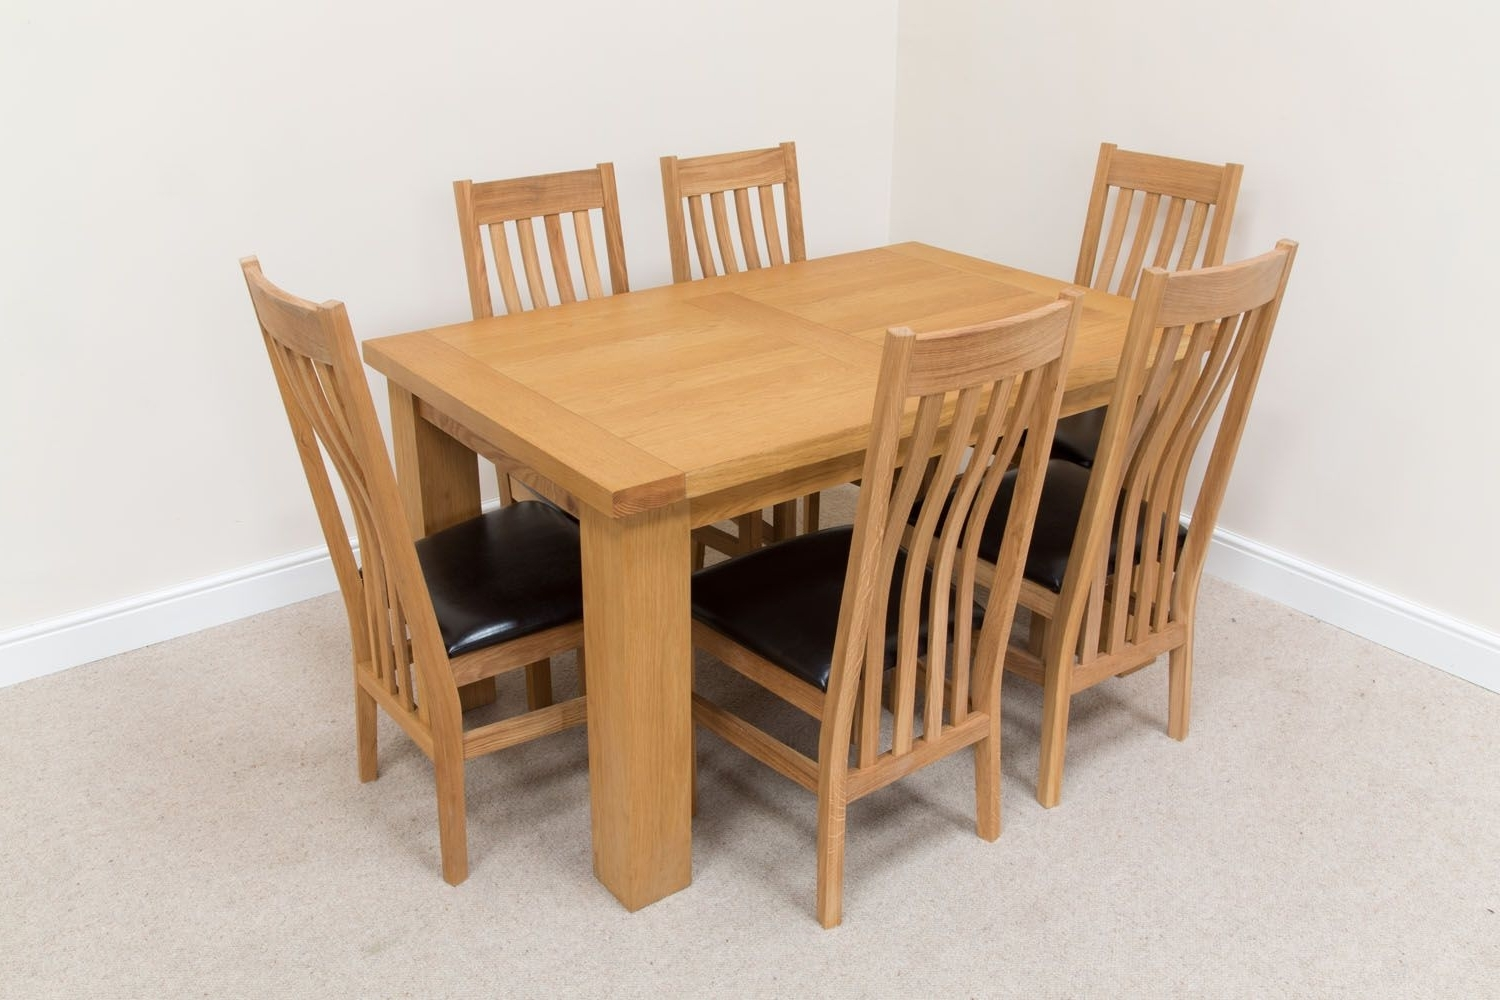 Most Current Riga 6 Seater Oak Dining Table Set Brown Leather Chairs Inside Oak Dining Set 6 Chairs (View 17 of 25)